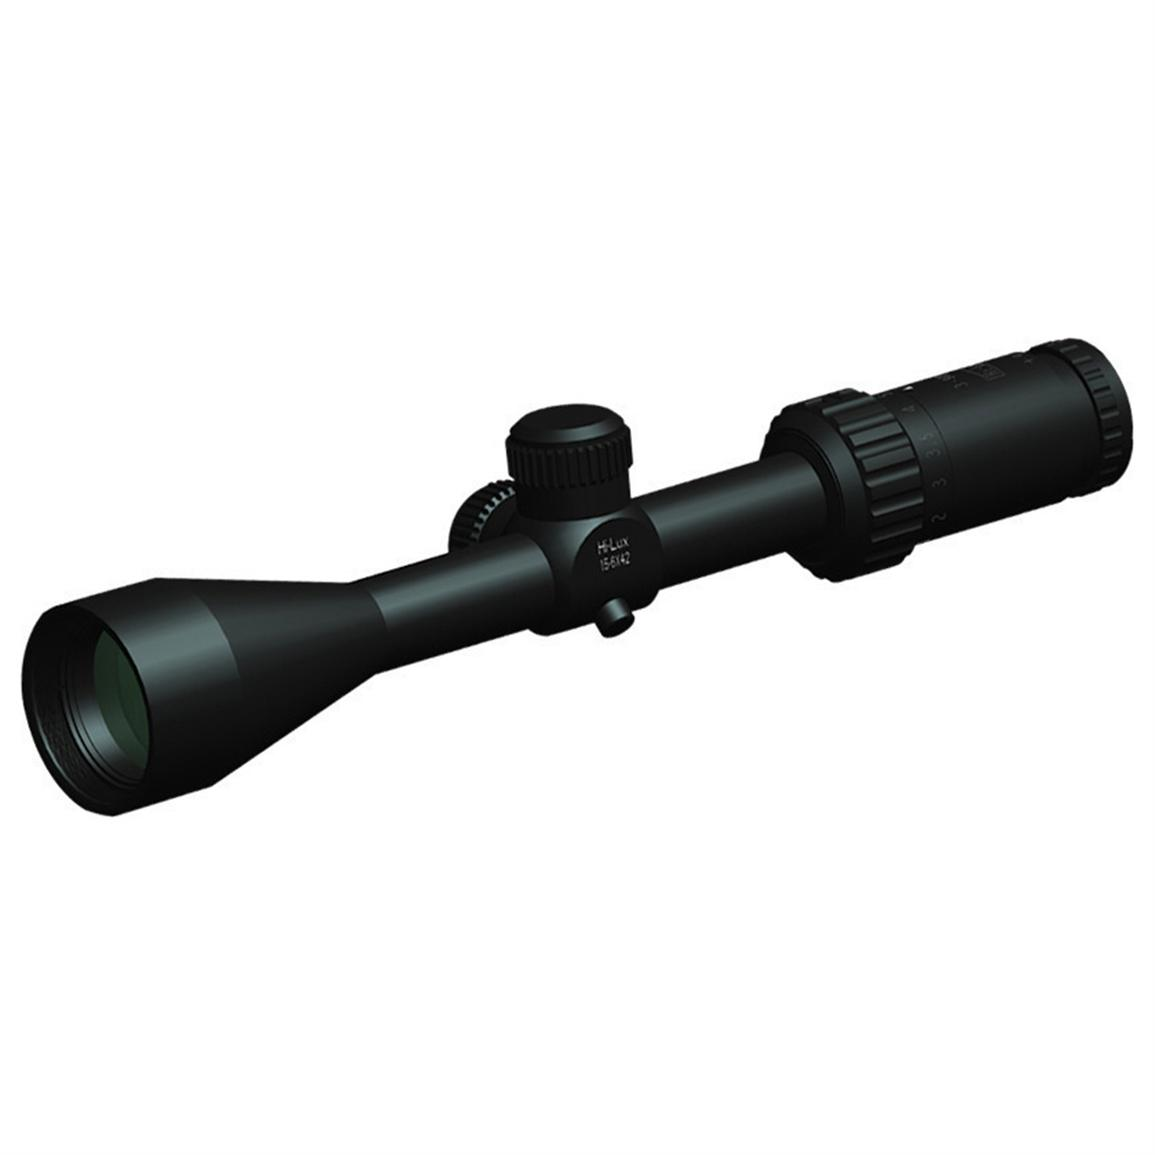 Hi-Lux™ 1.5-6x42 mm Buck Country Riflescope